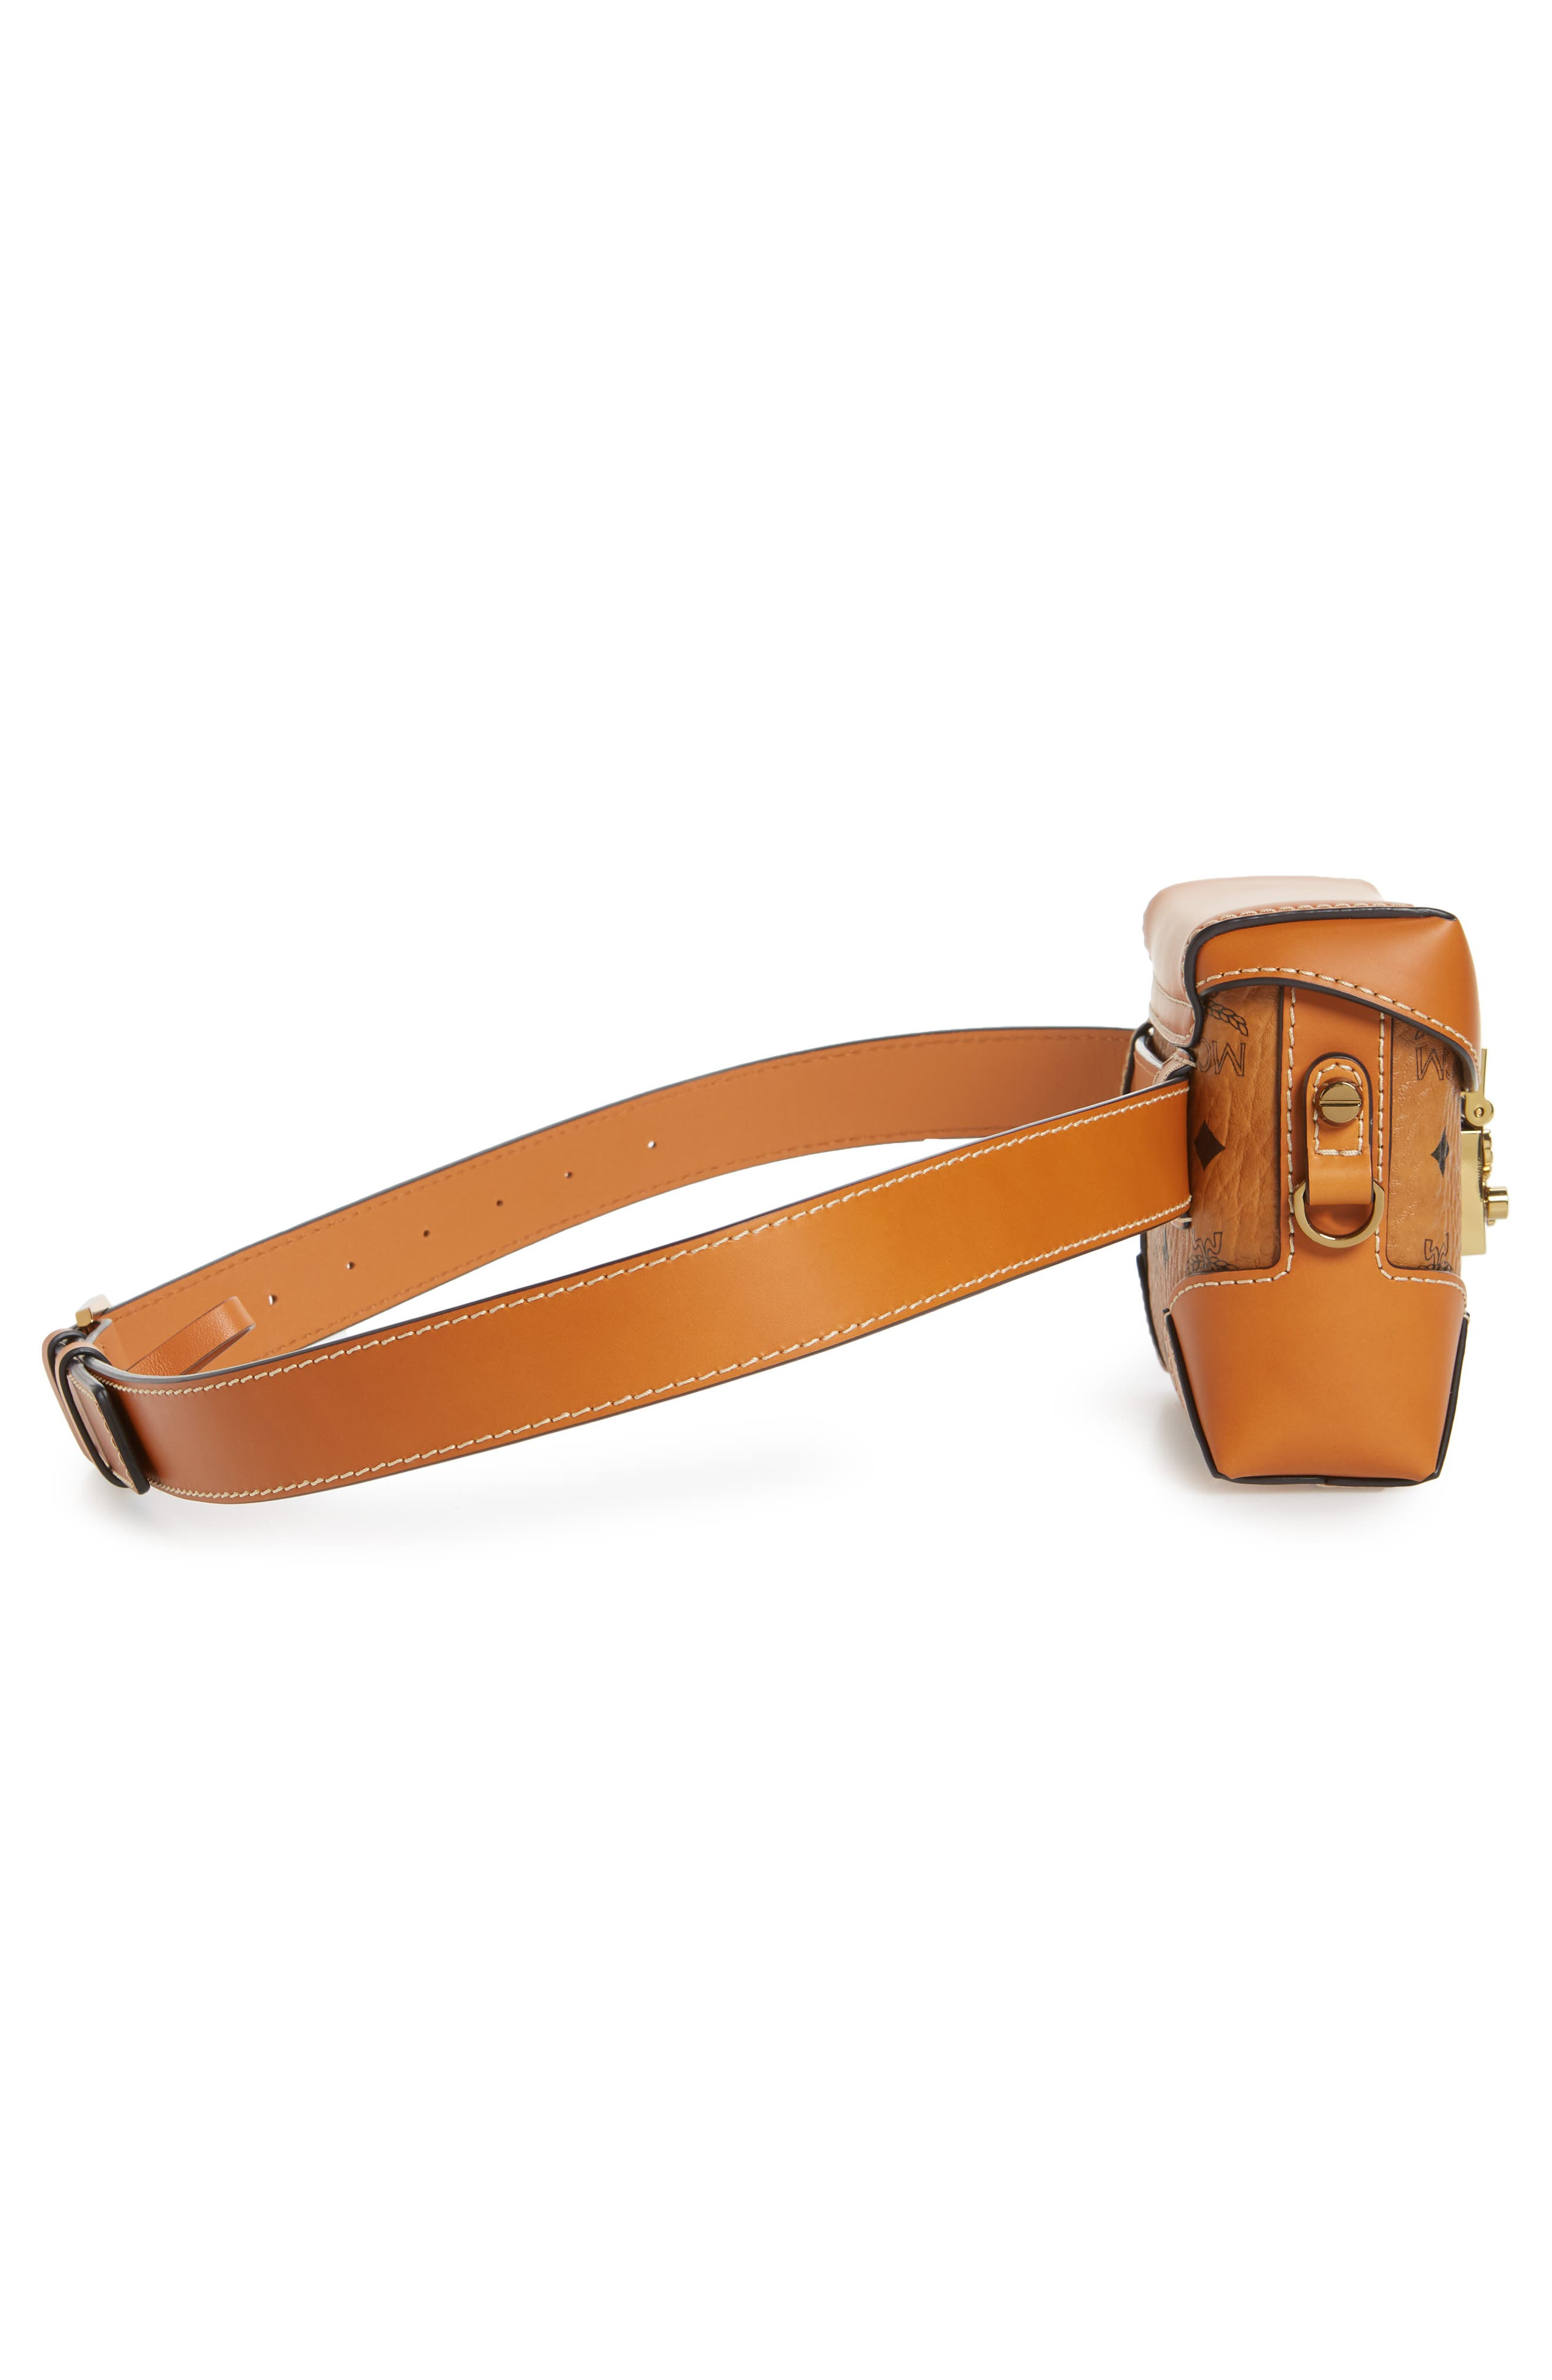 Small Berlin Canvas & Leather Belt Bag,                             Alternate thumbnail 7, color,                             200